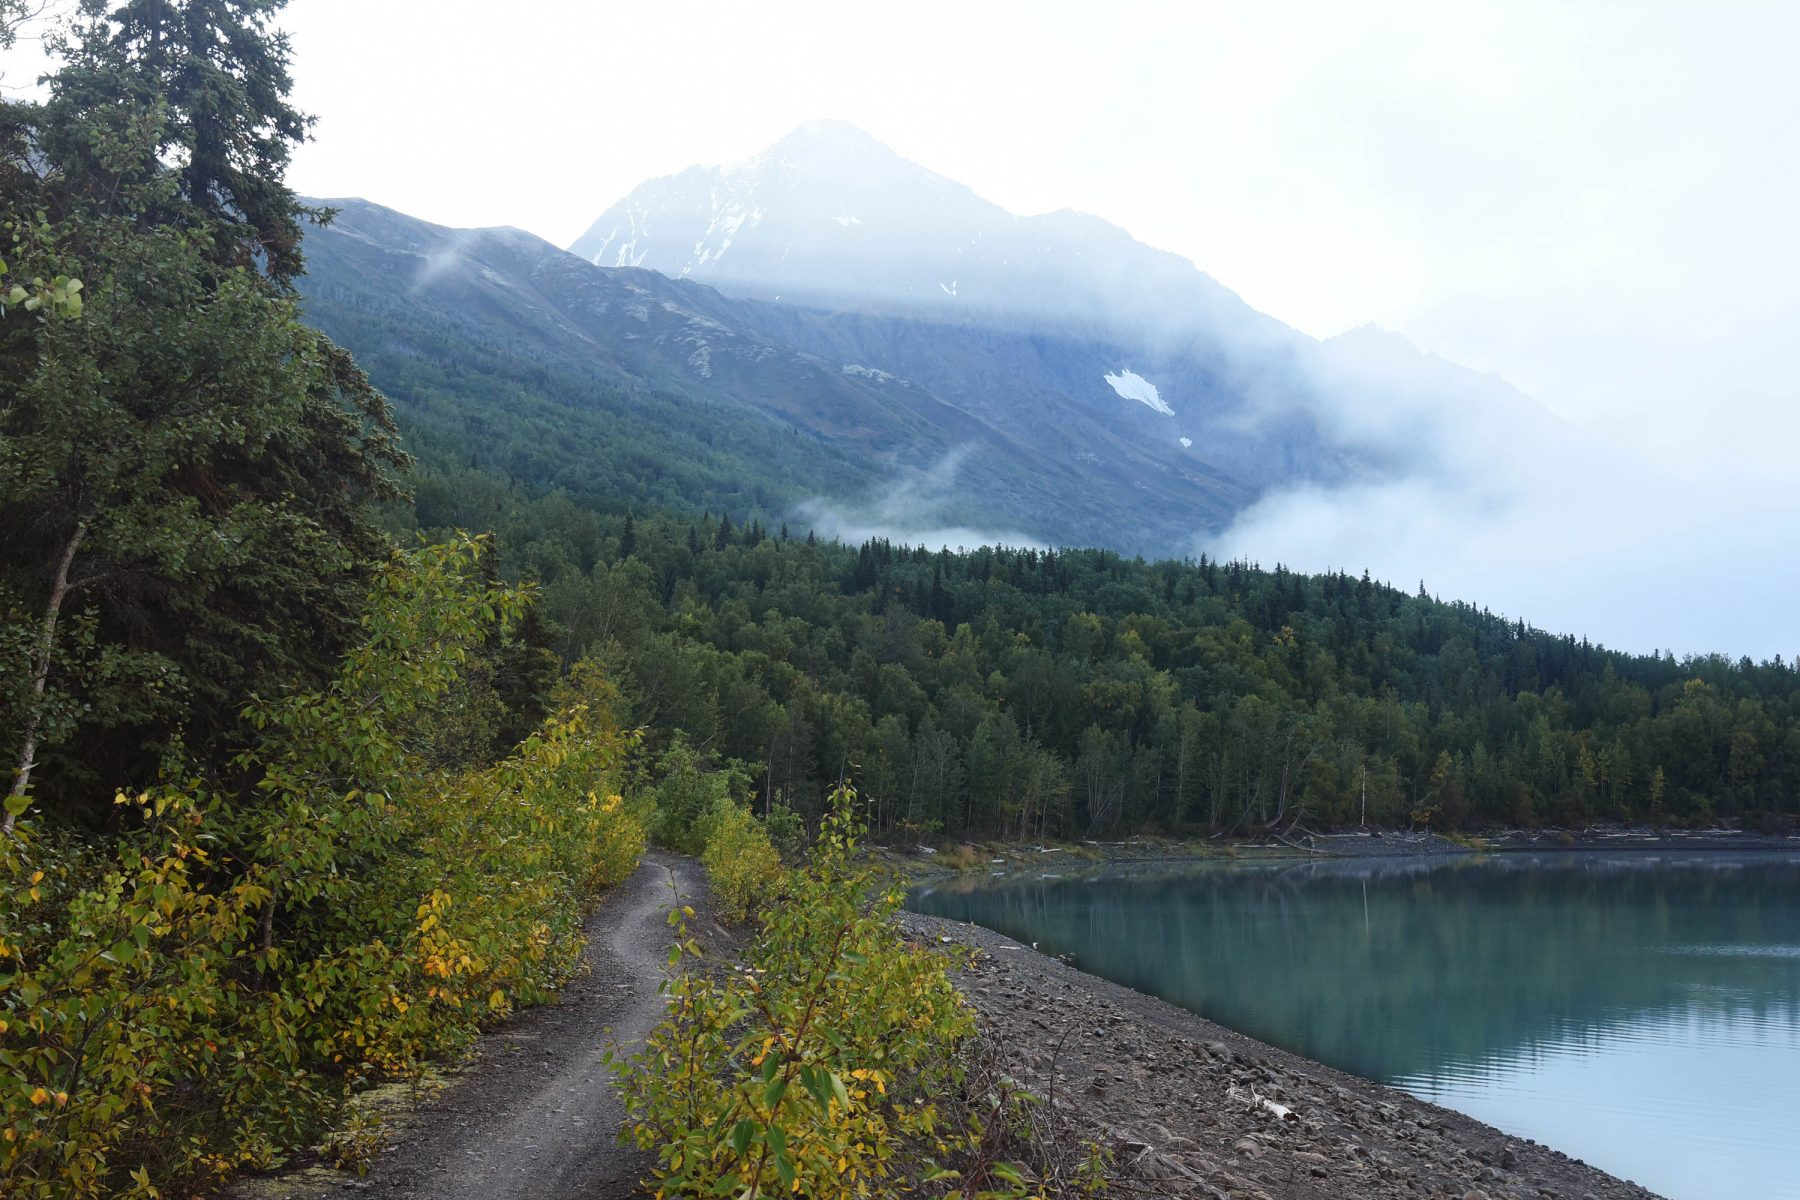 The bike path around Eklutna Lake